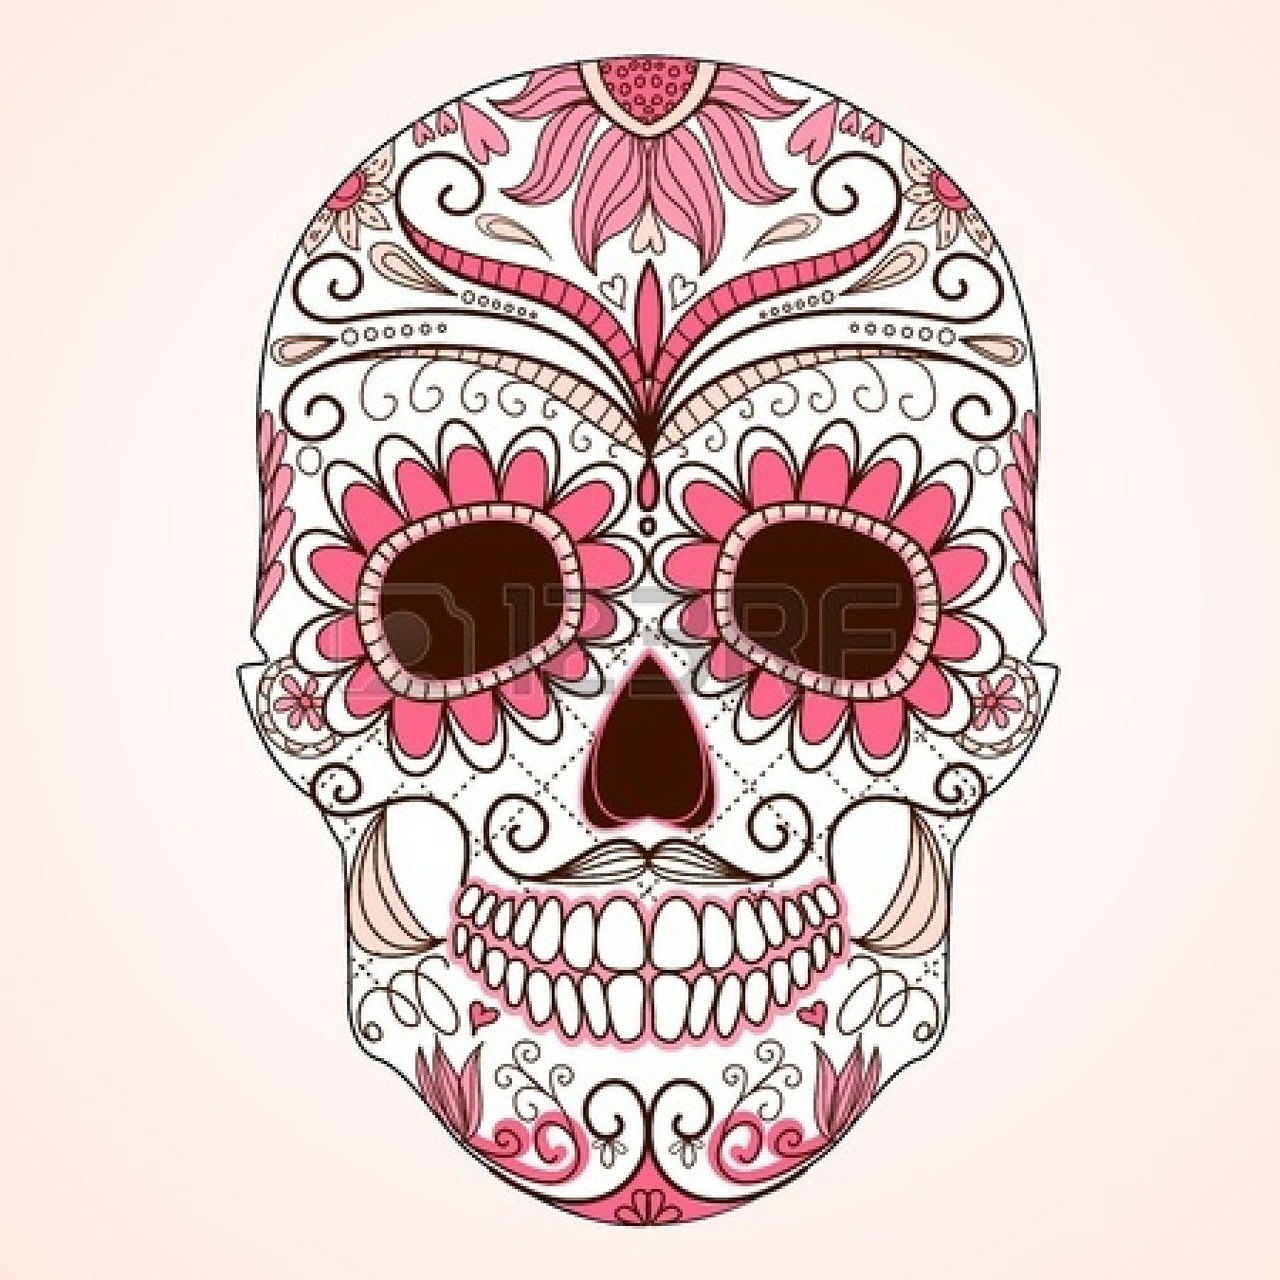 Image About Skull In Me By ϟ Kitty On We Heart It